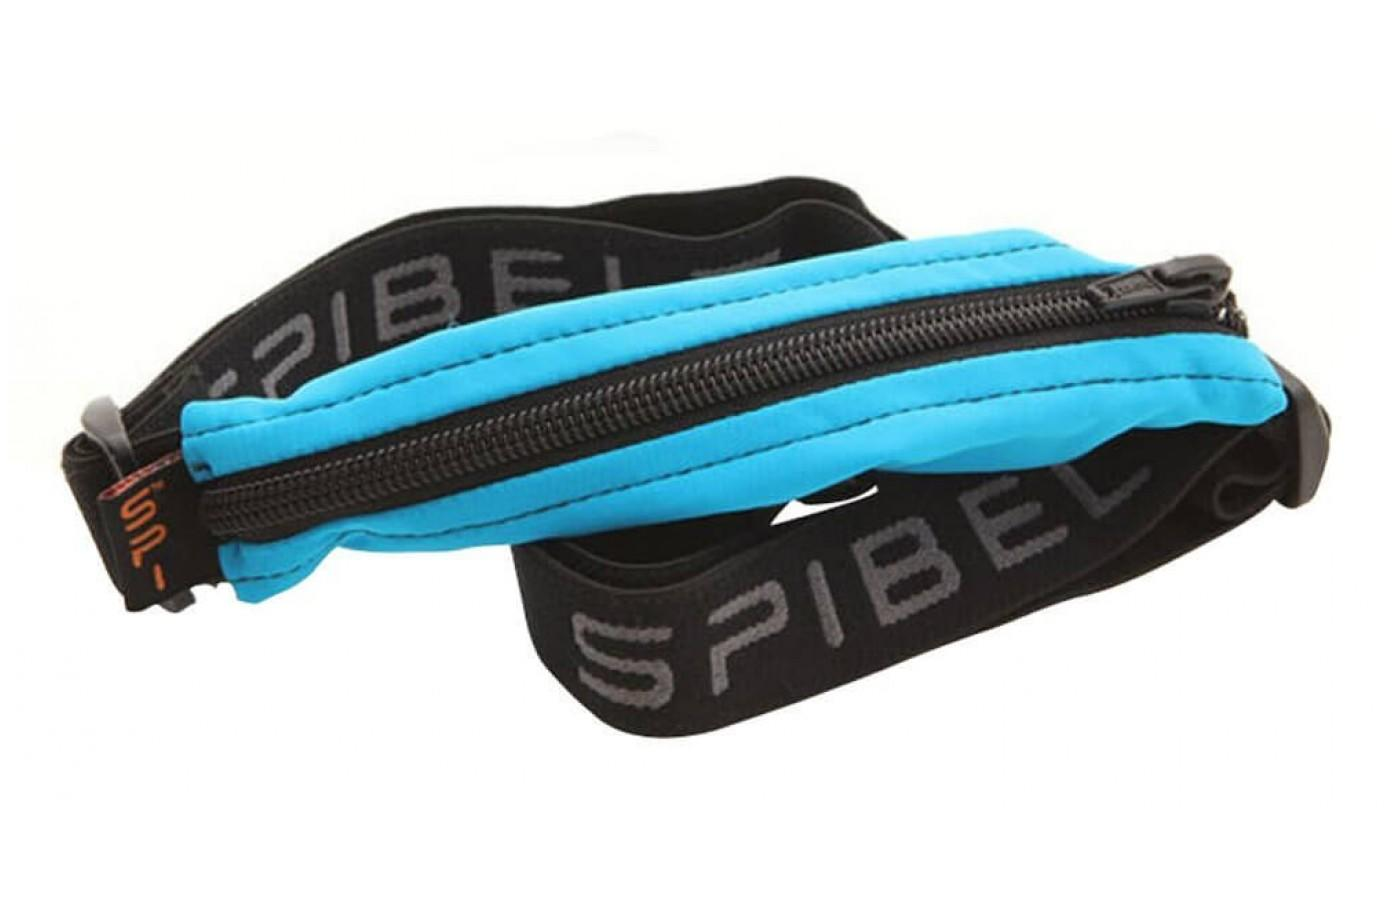 The SPIbelt comes in a ton of color options